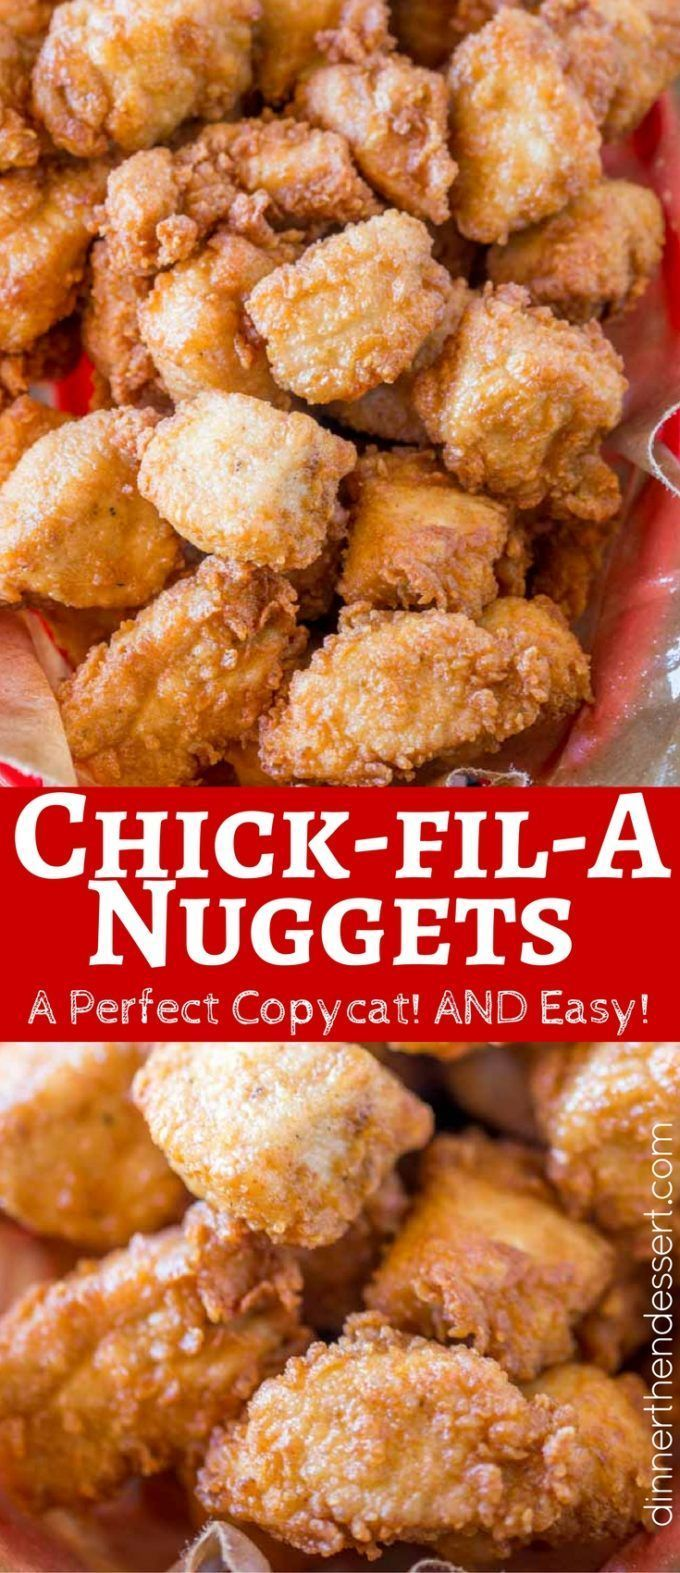 Chick-fil-A Nuggets made with chicken breast meat and no pickle juice are an spot on copycat of the original nuggets without the hefty price tag!